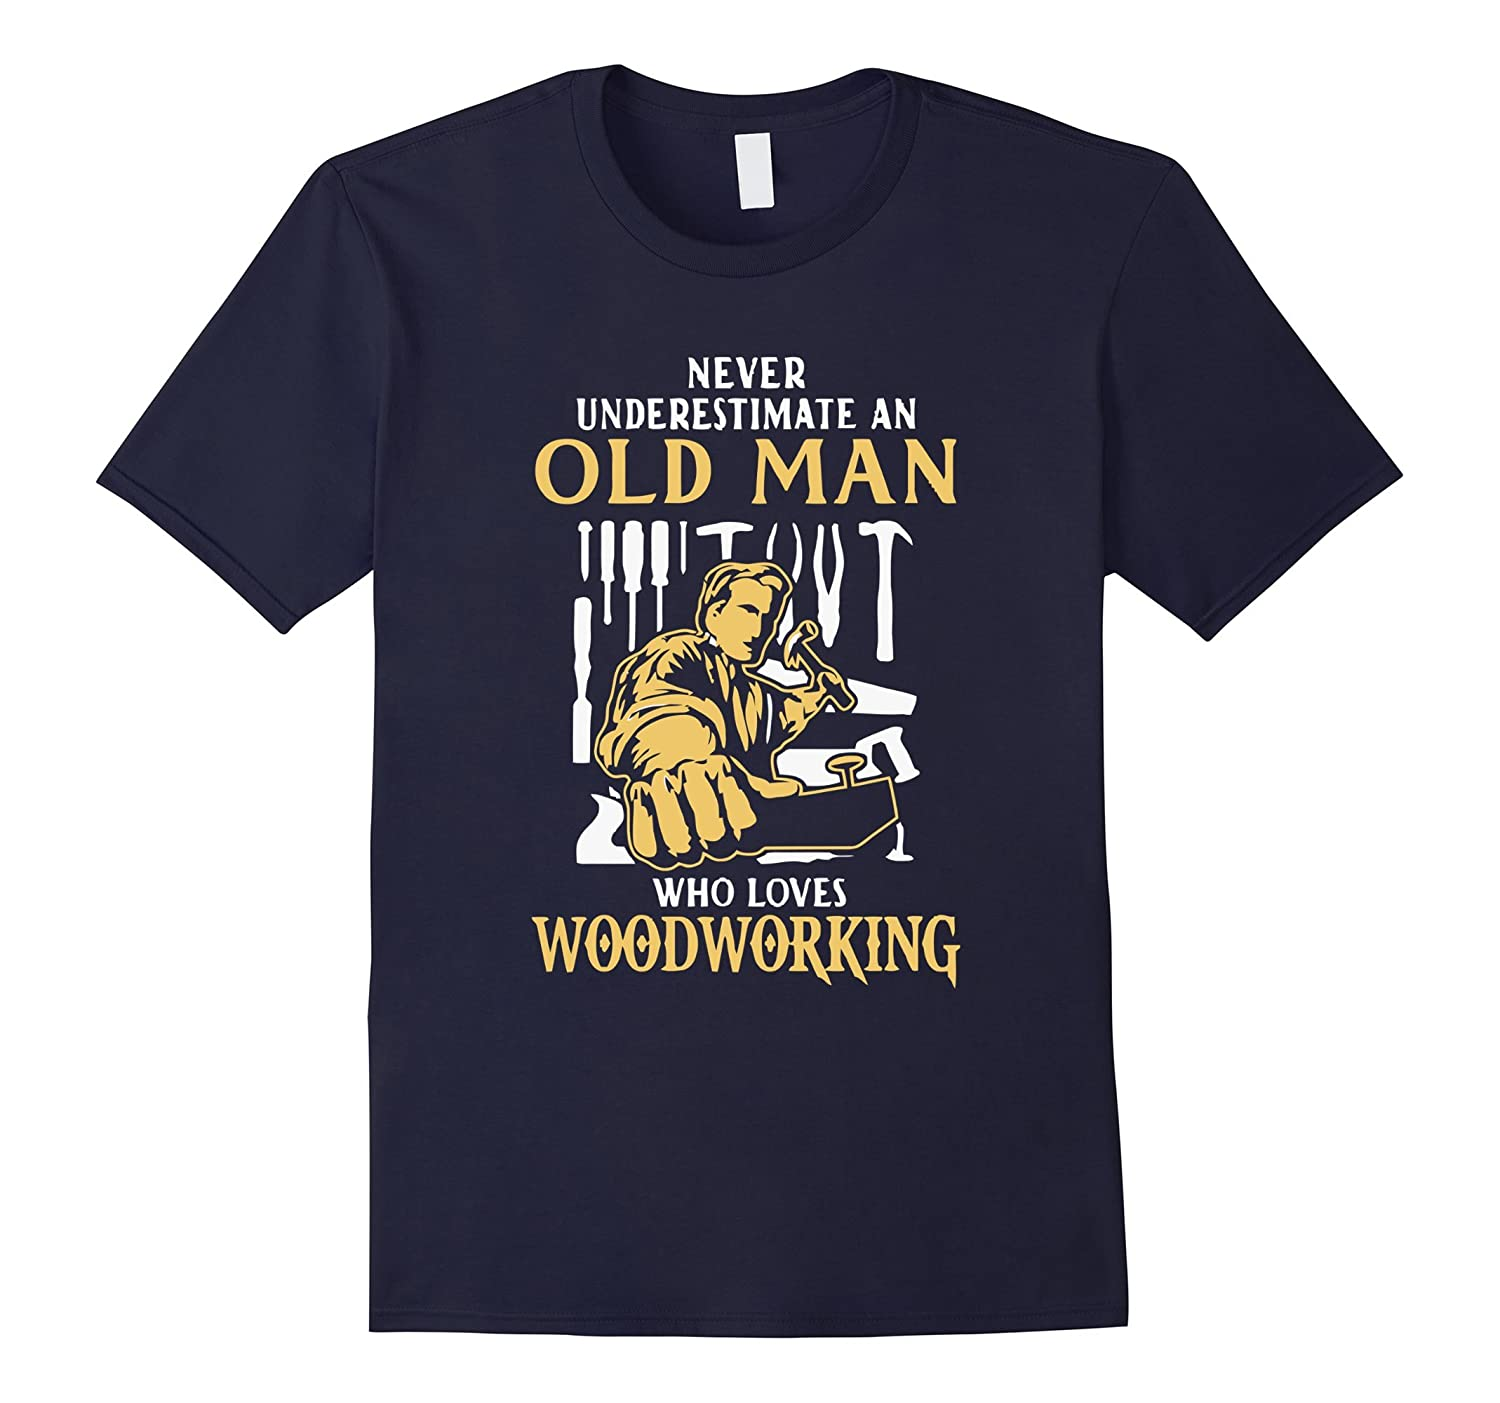 OLD MAN WHO LOVES WOODWORKING tshirt-Art